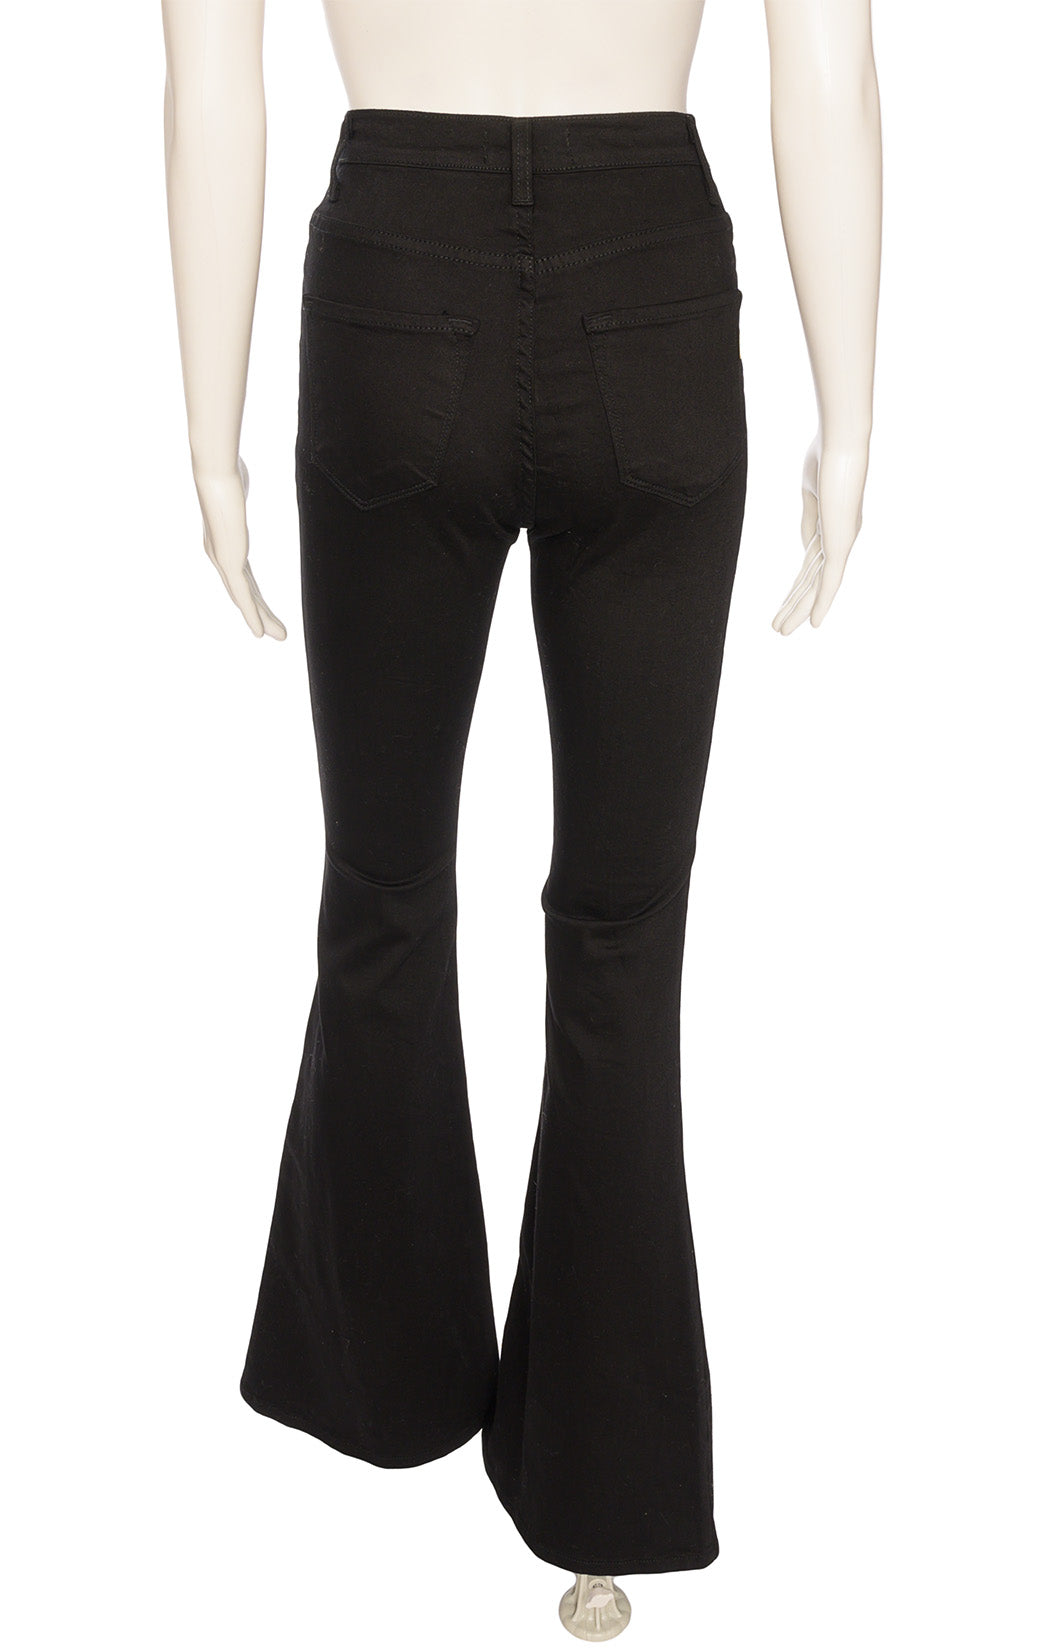 Black five pocket style jeans with front zipper bell bottoms